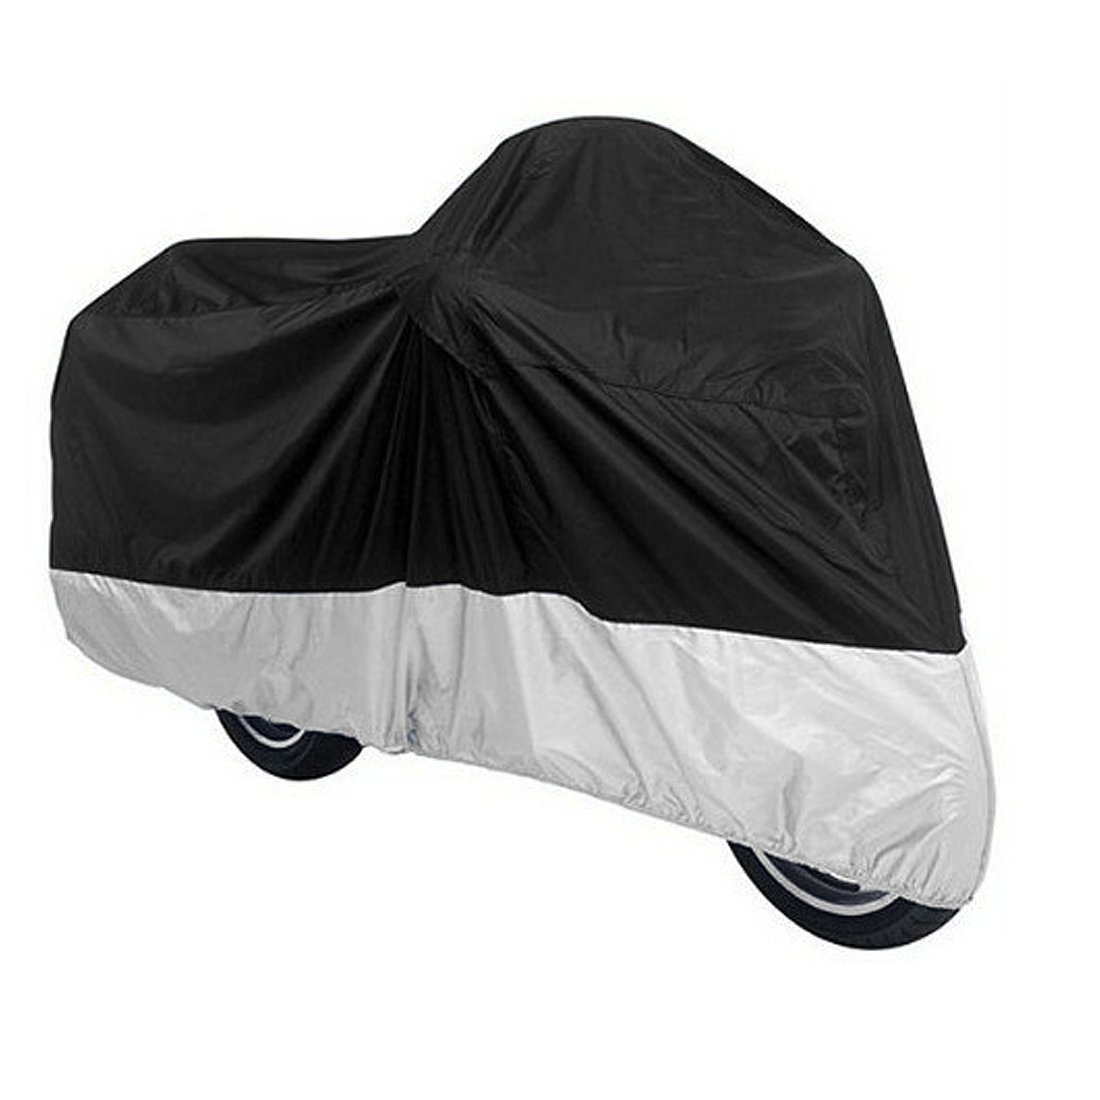 Outdoor Motorcycle Waterproof Protective Cover Silver Tone Black 230x95x125cm